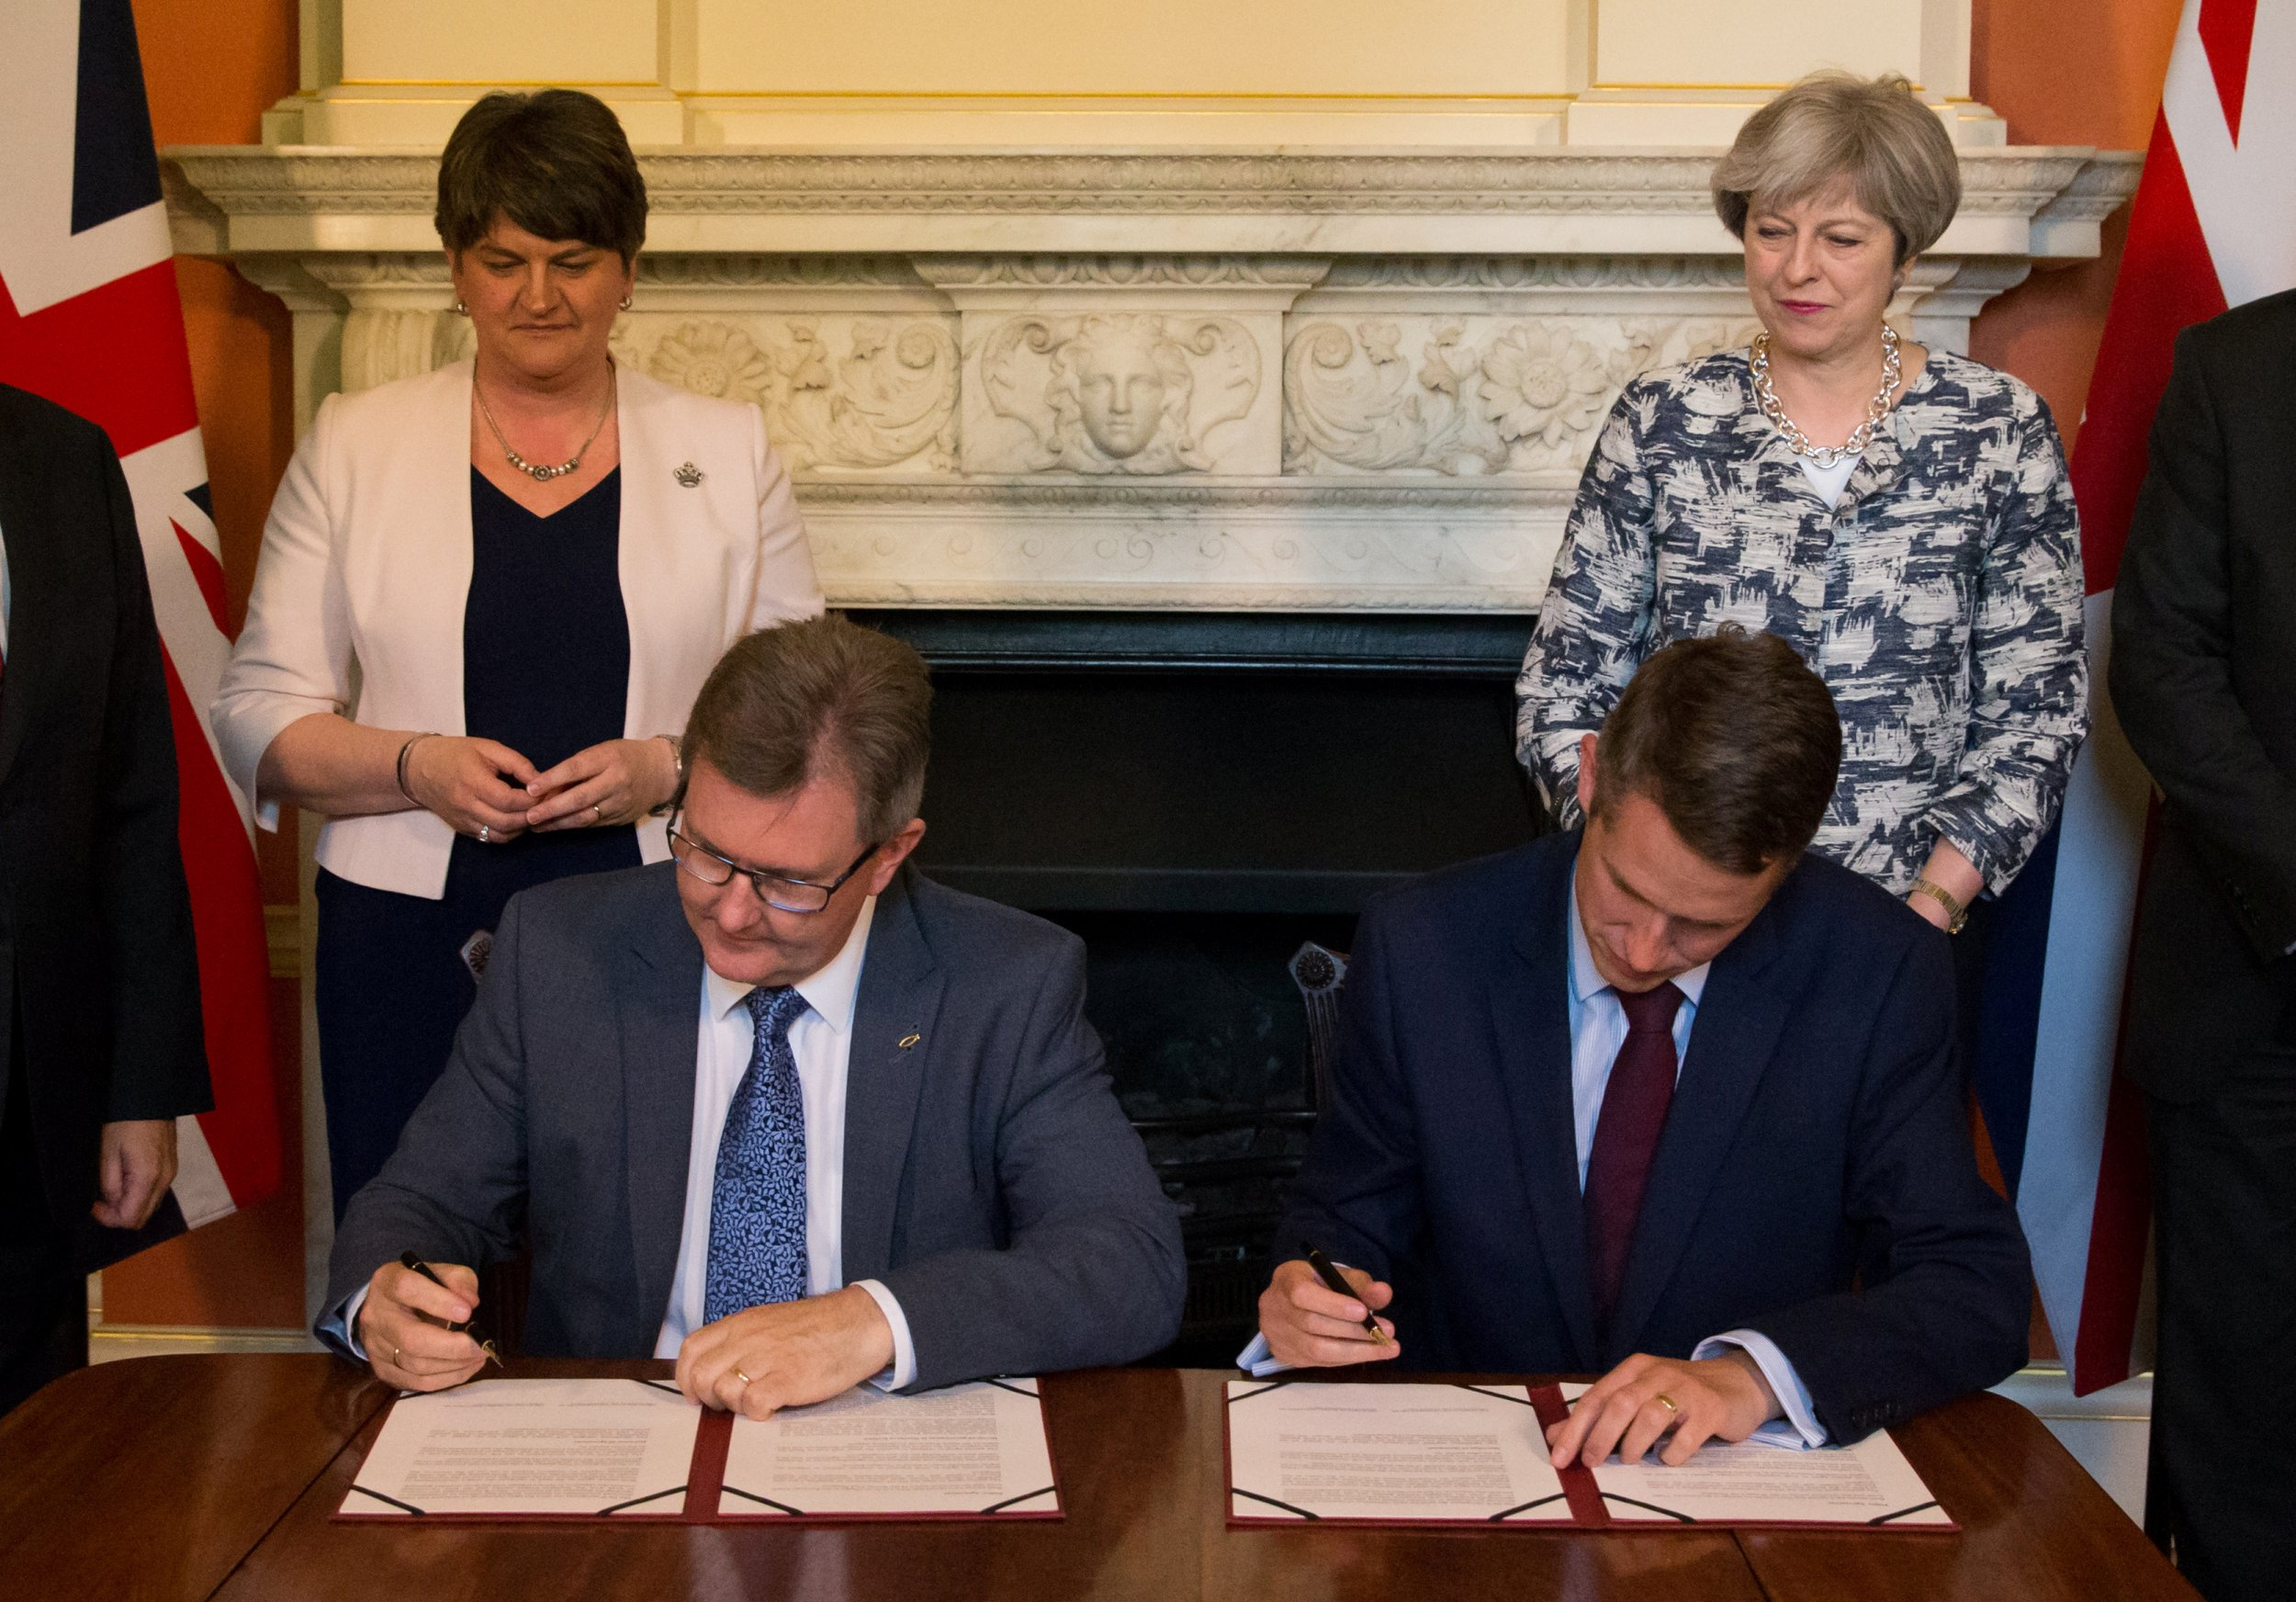 Theresa May DUP deal